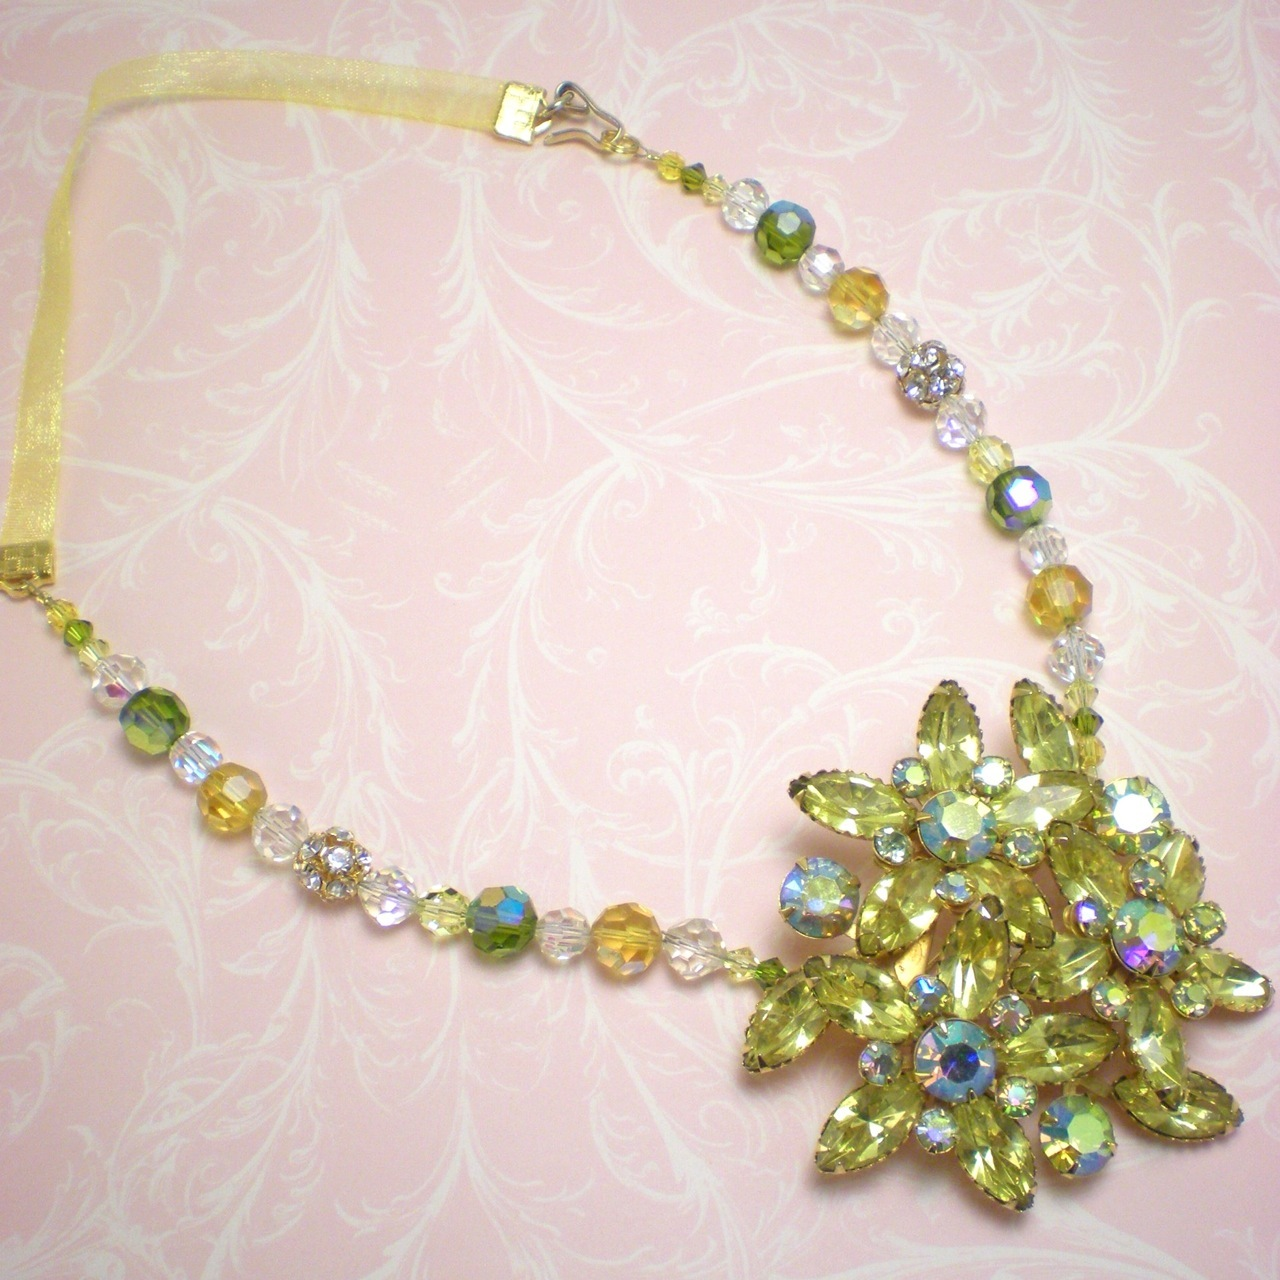 Flowers & Decor, Jewelry, yellow, green, gold, Necklaces, Brooches, Vintage, Garden, Lime, Bridesmaid, Bridal, Crystal, Ribbon, Necklace, Swarovski, Old, Brooch, Costume, Rhinestone, Hollywood, Glamour, Dana saylor designs, Olive, Recycled, Peridot, Repurposed, Daffodil, Jonquil, Bridesma